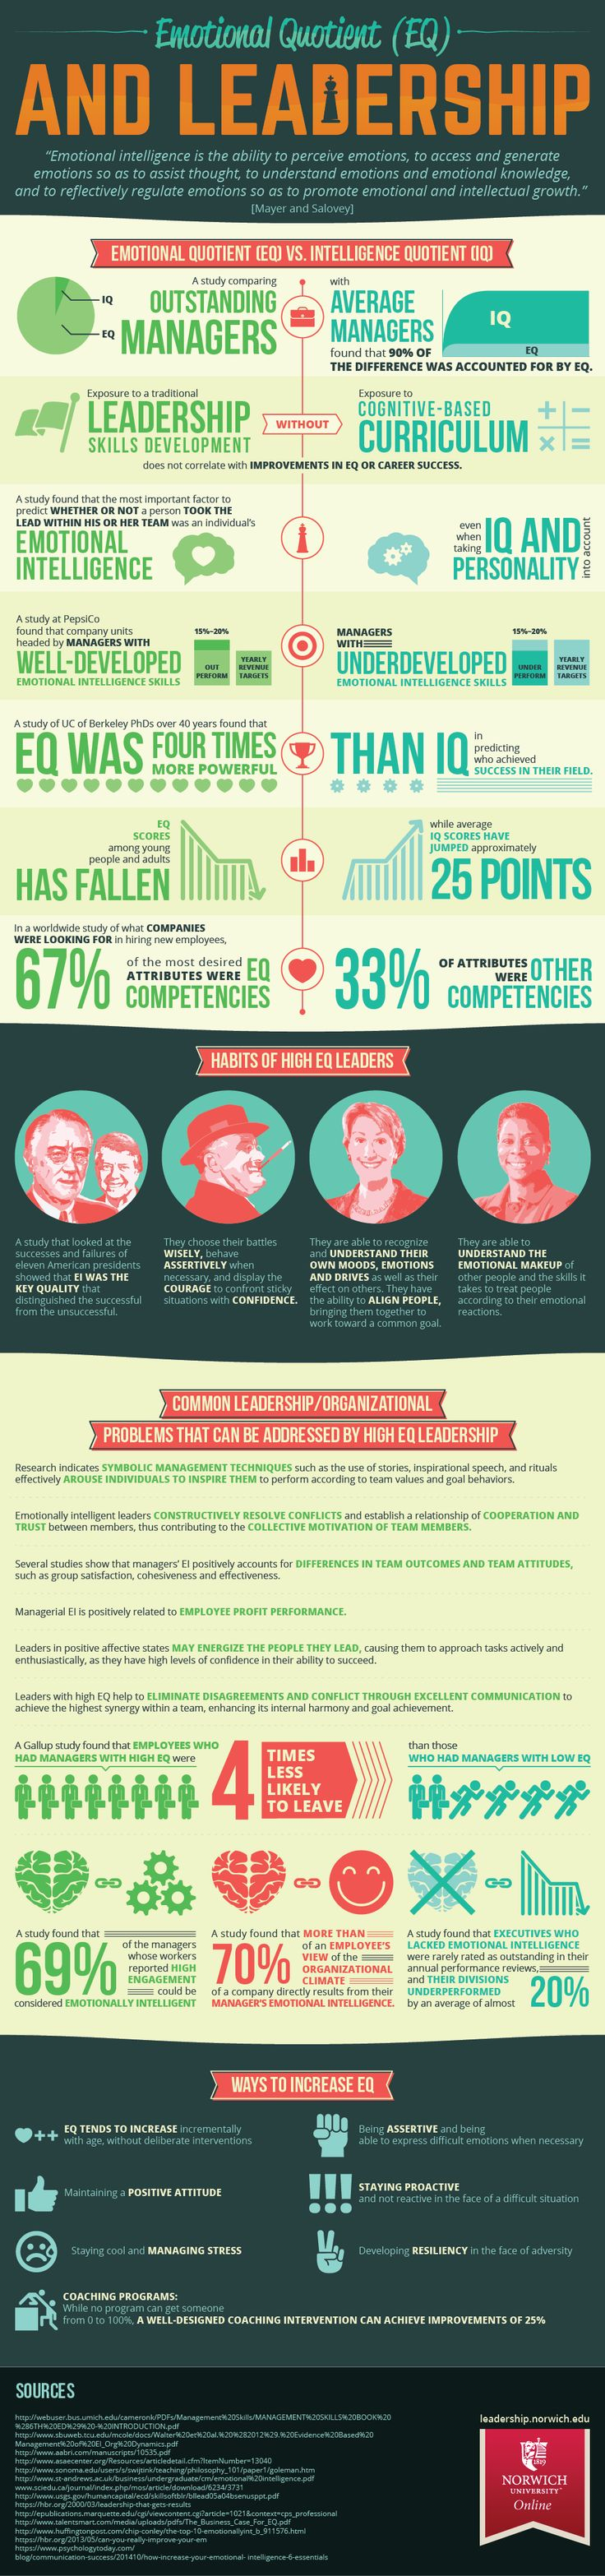 Emotional Intelligence and Leadership Infographic - http://elearninginfographics.com/emotional-intelligence-leadership-infographic/